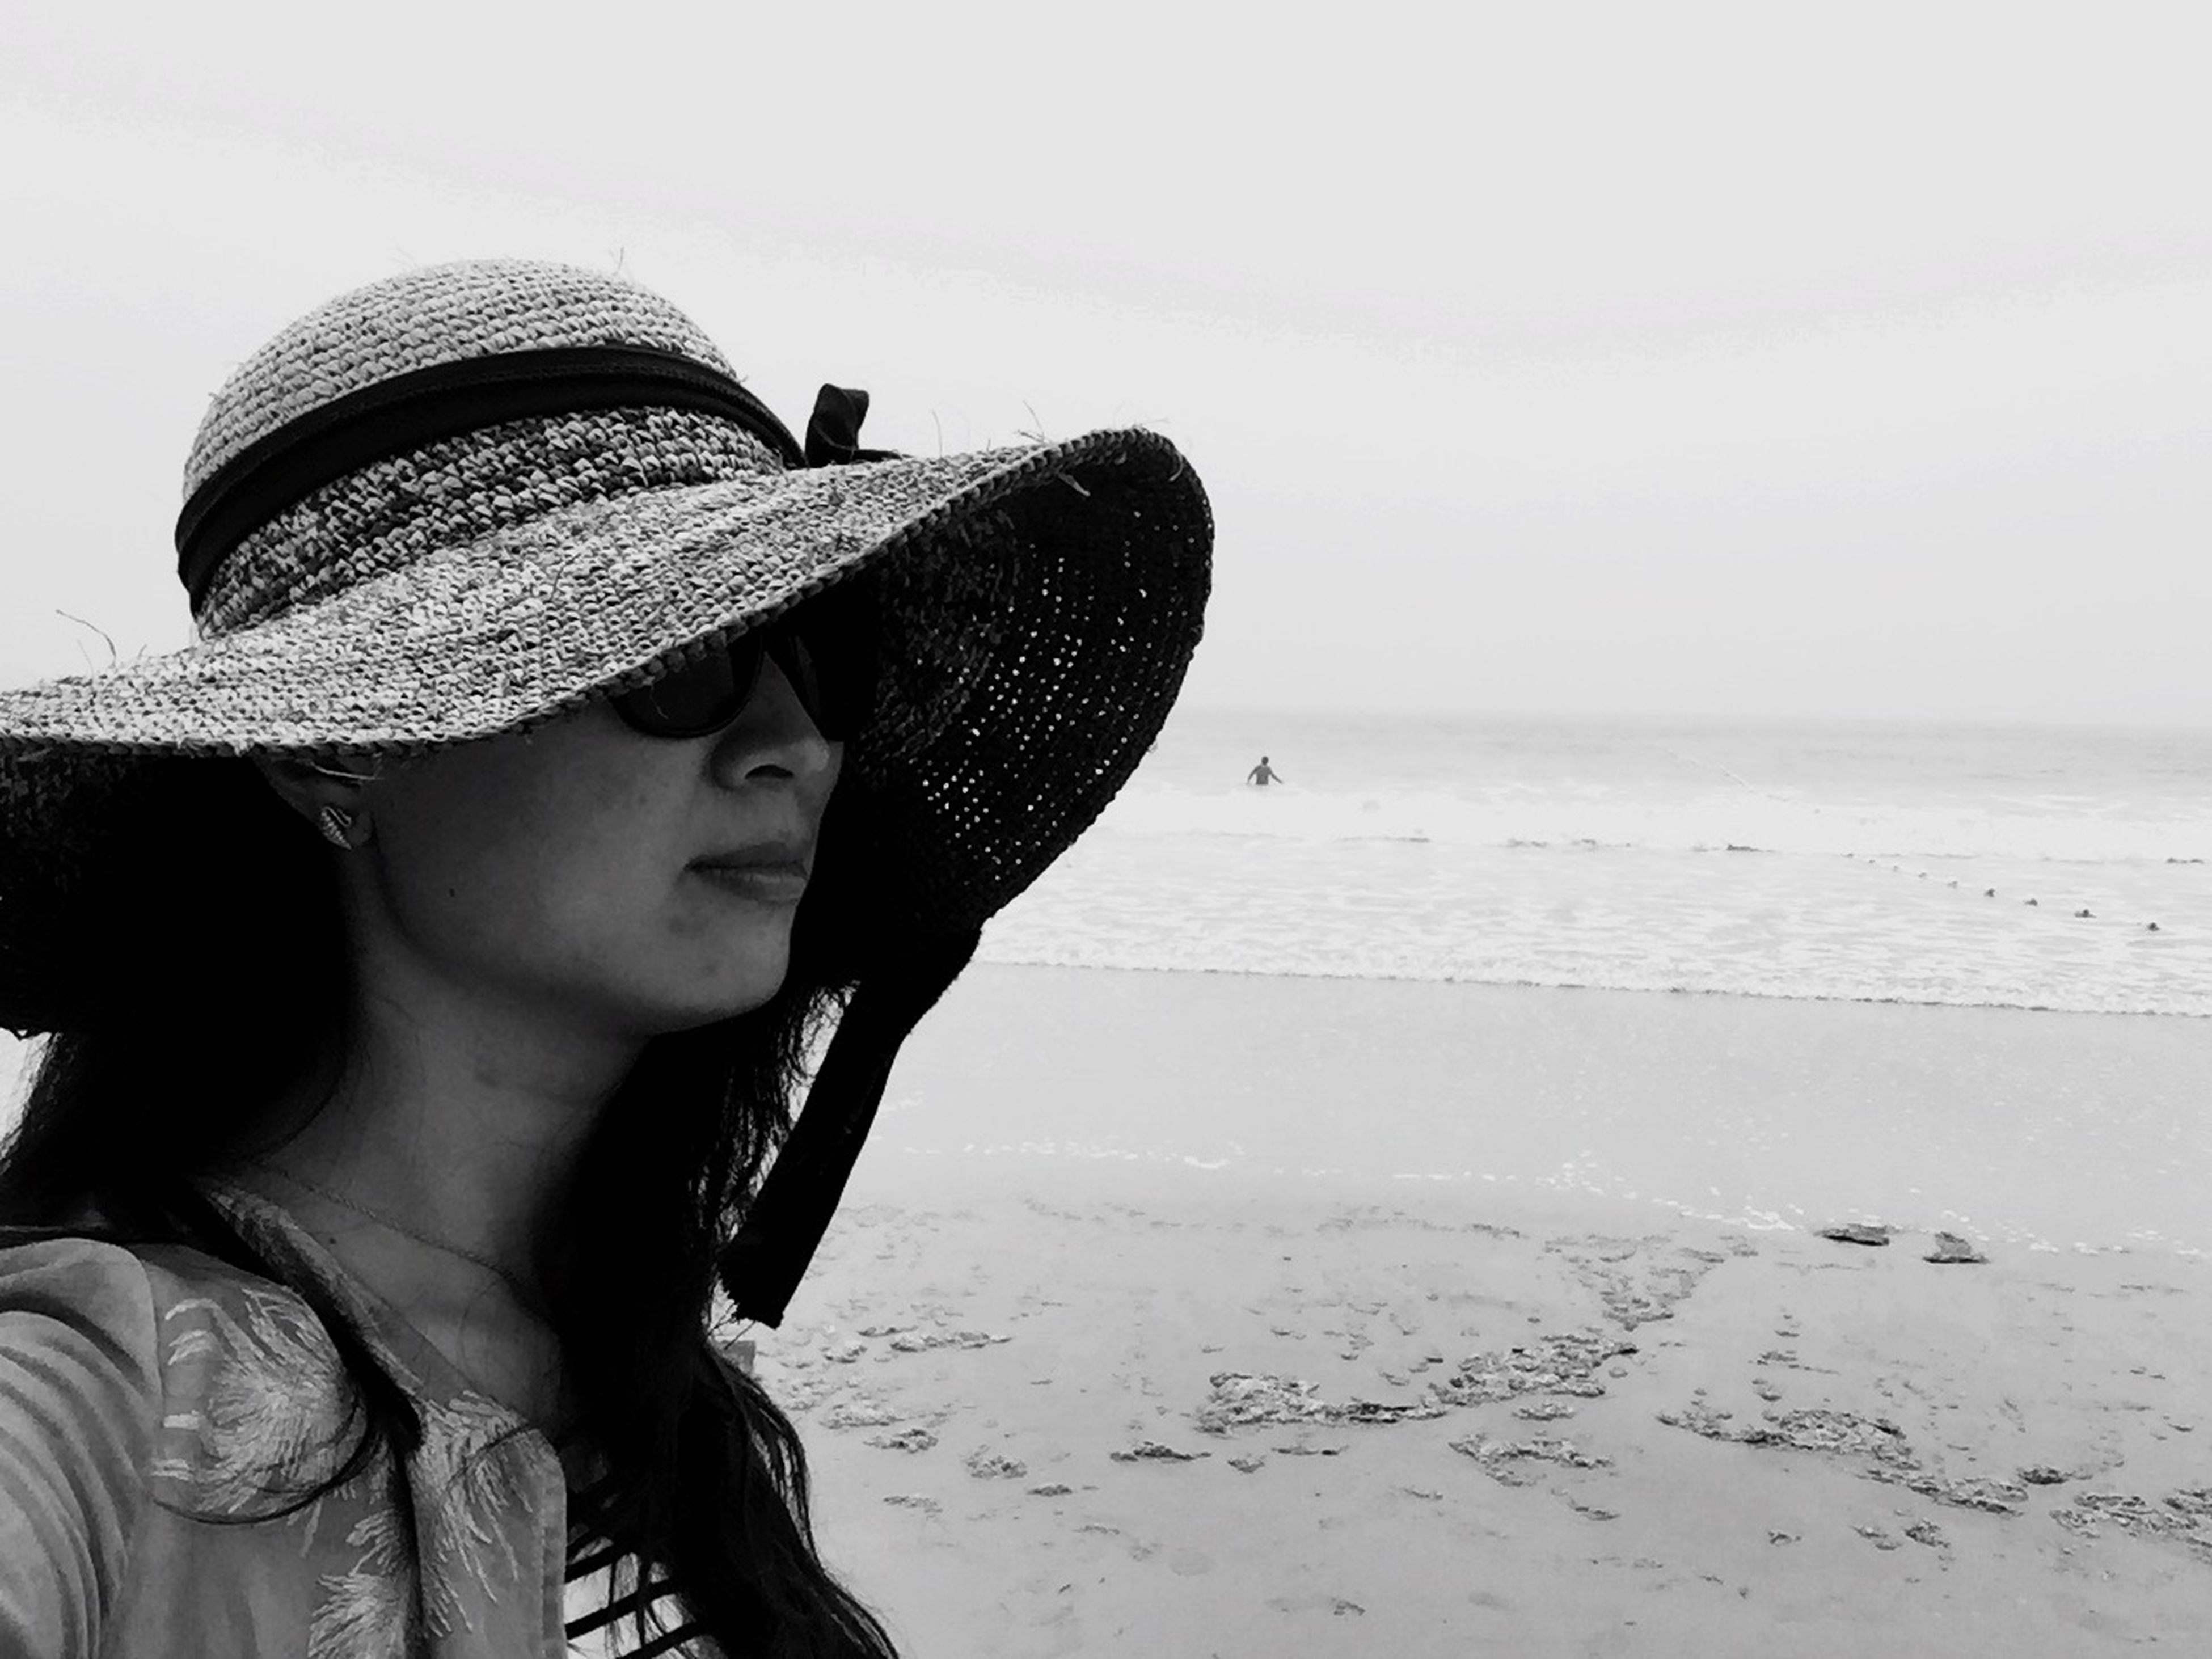 lifestyles, leisure activity, person, young adult, clear sky, headshot, casual clothing, beach, sea, hat, young women, water, side view, copy space, looking away, smiling, mid adult, sunglasses